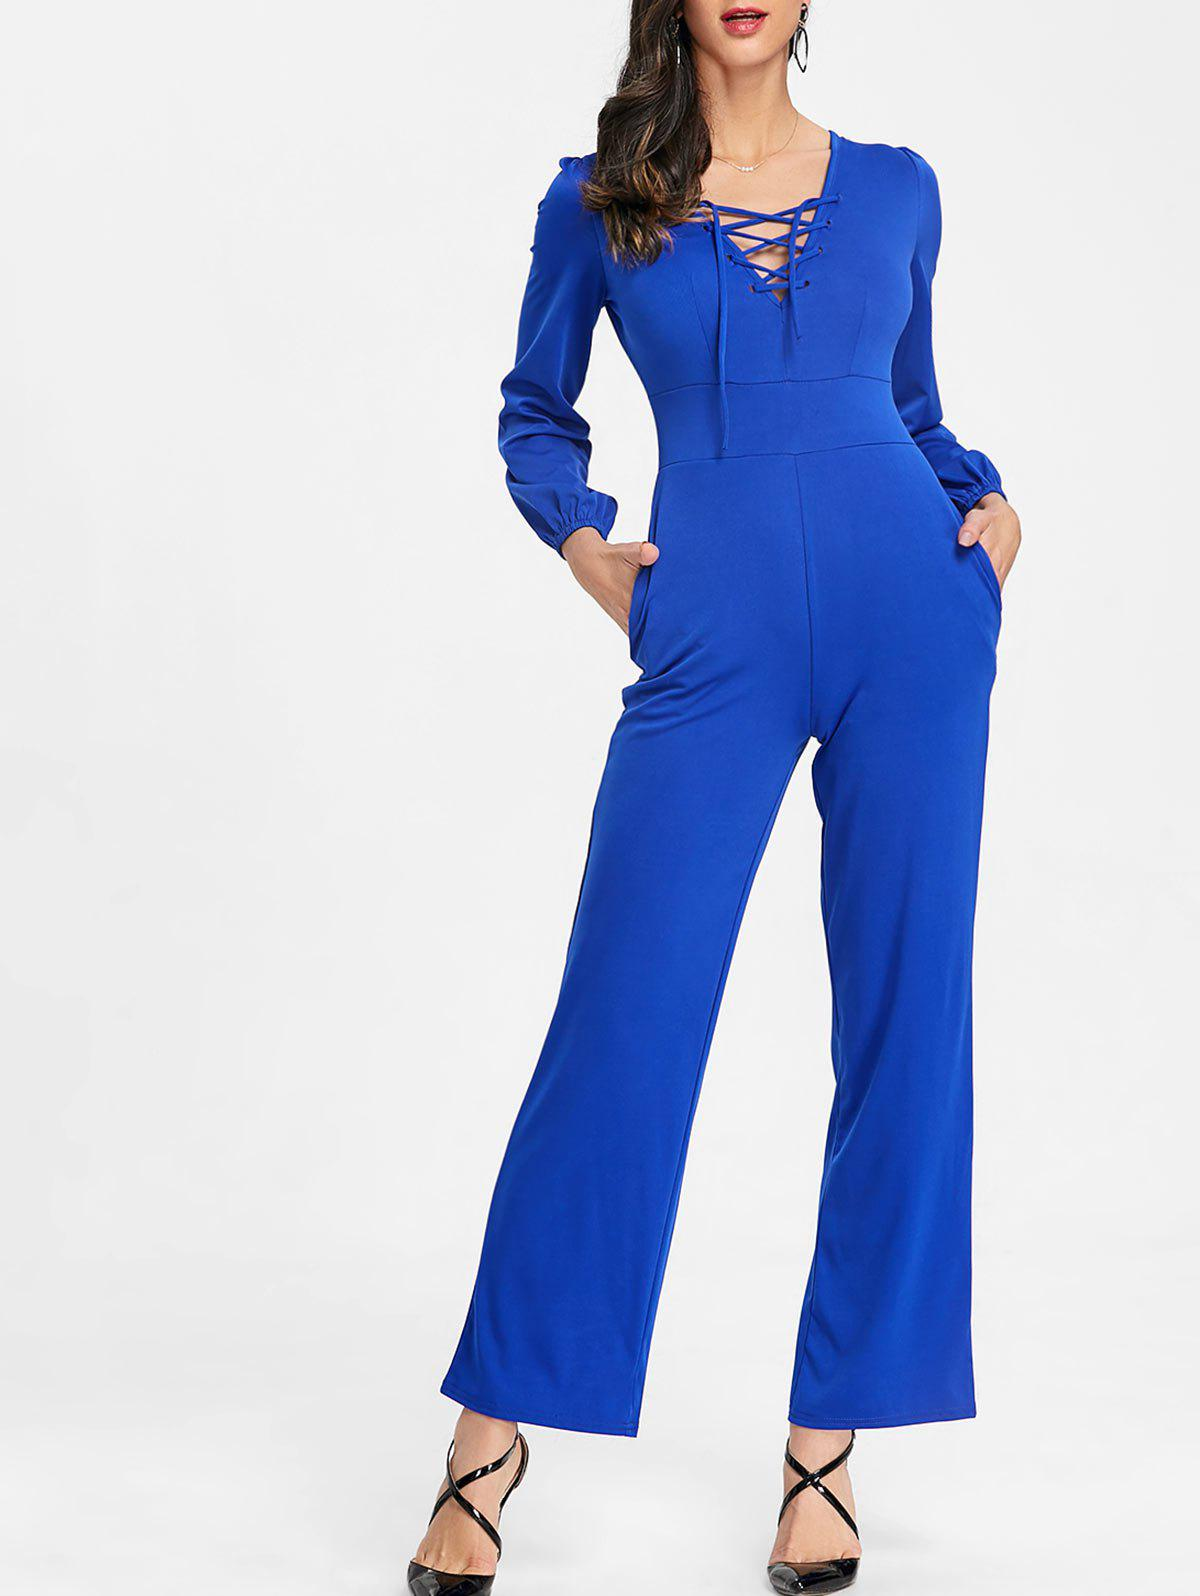 Shop Lace Up Wide Leg Jumpsuit